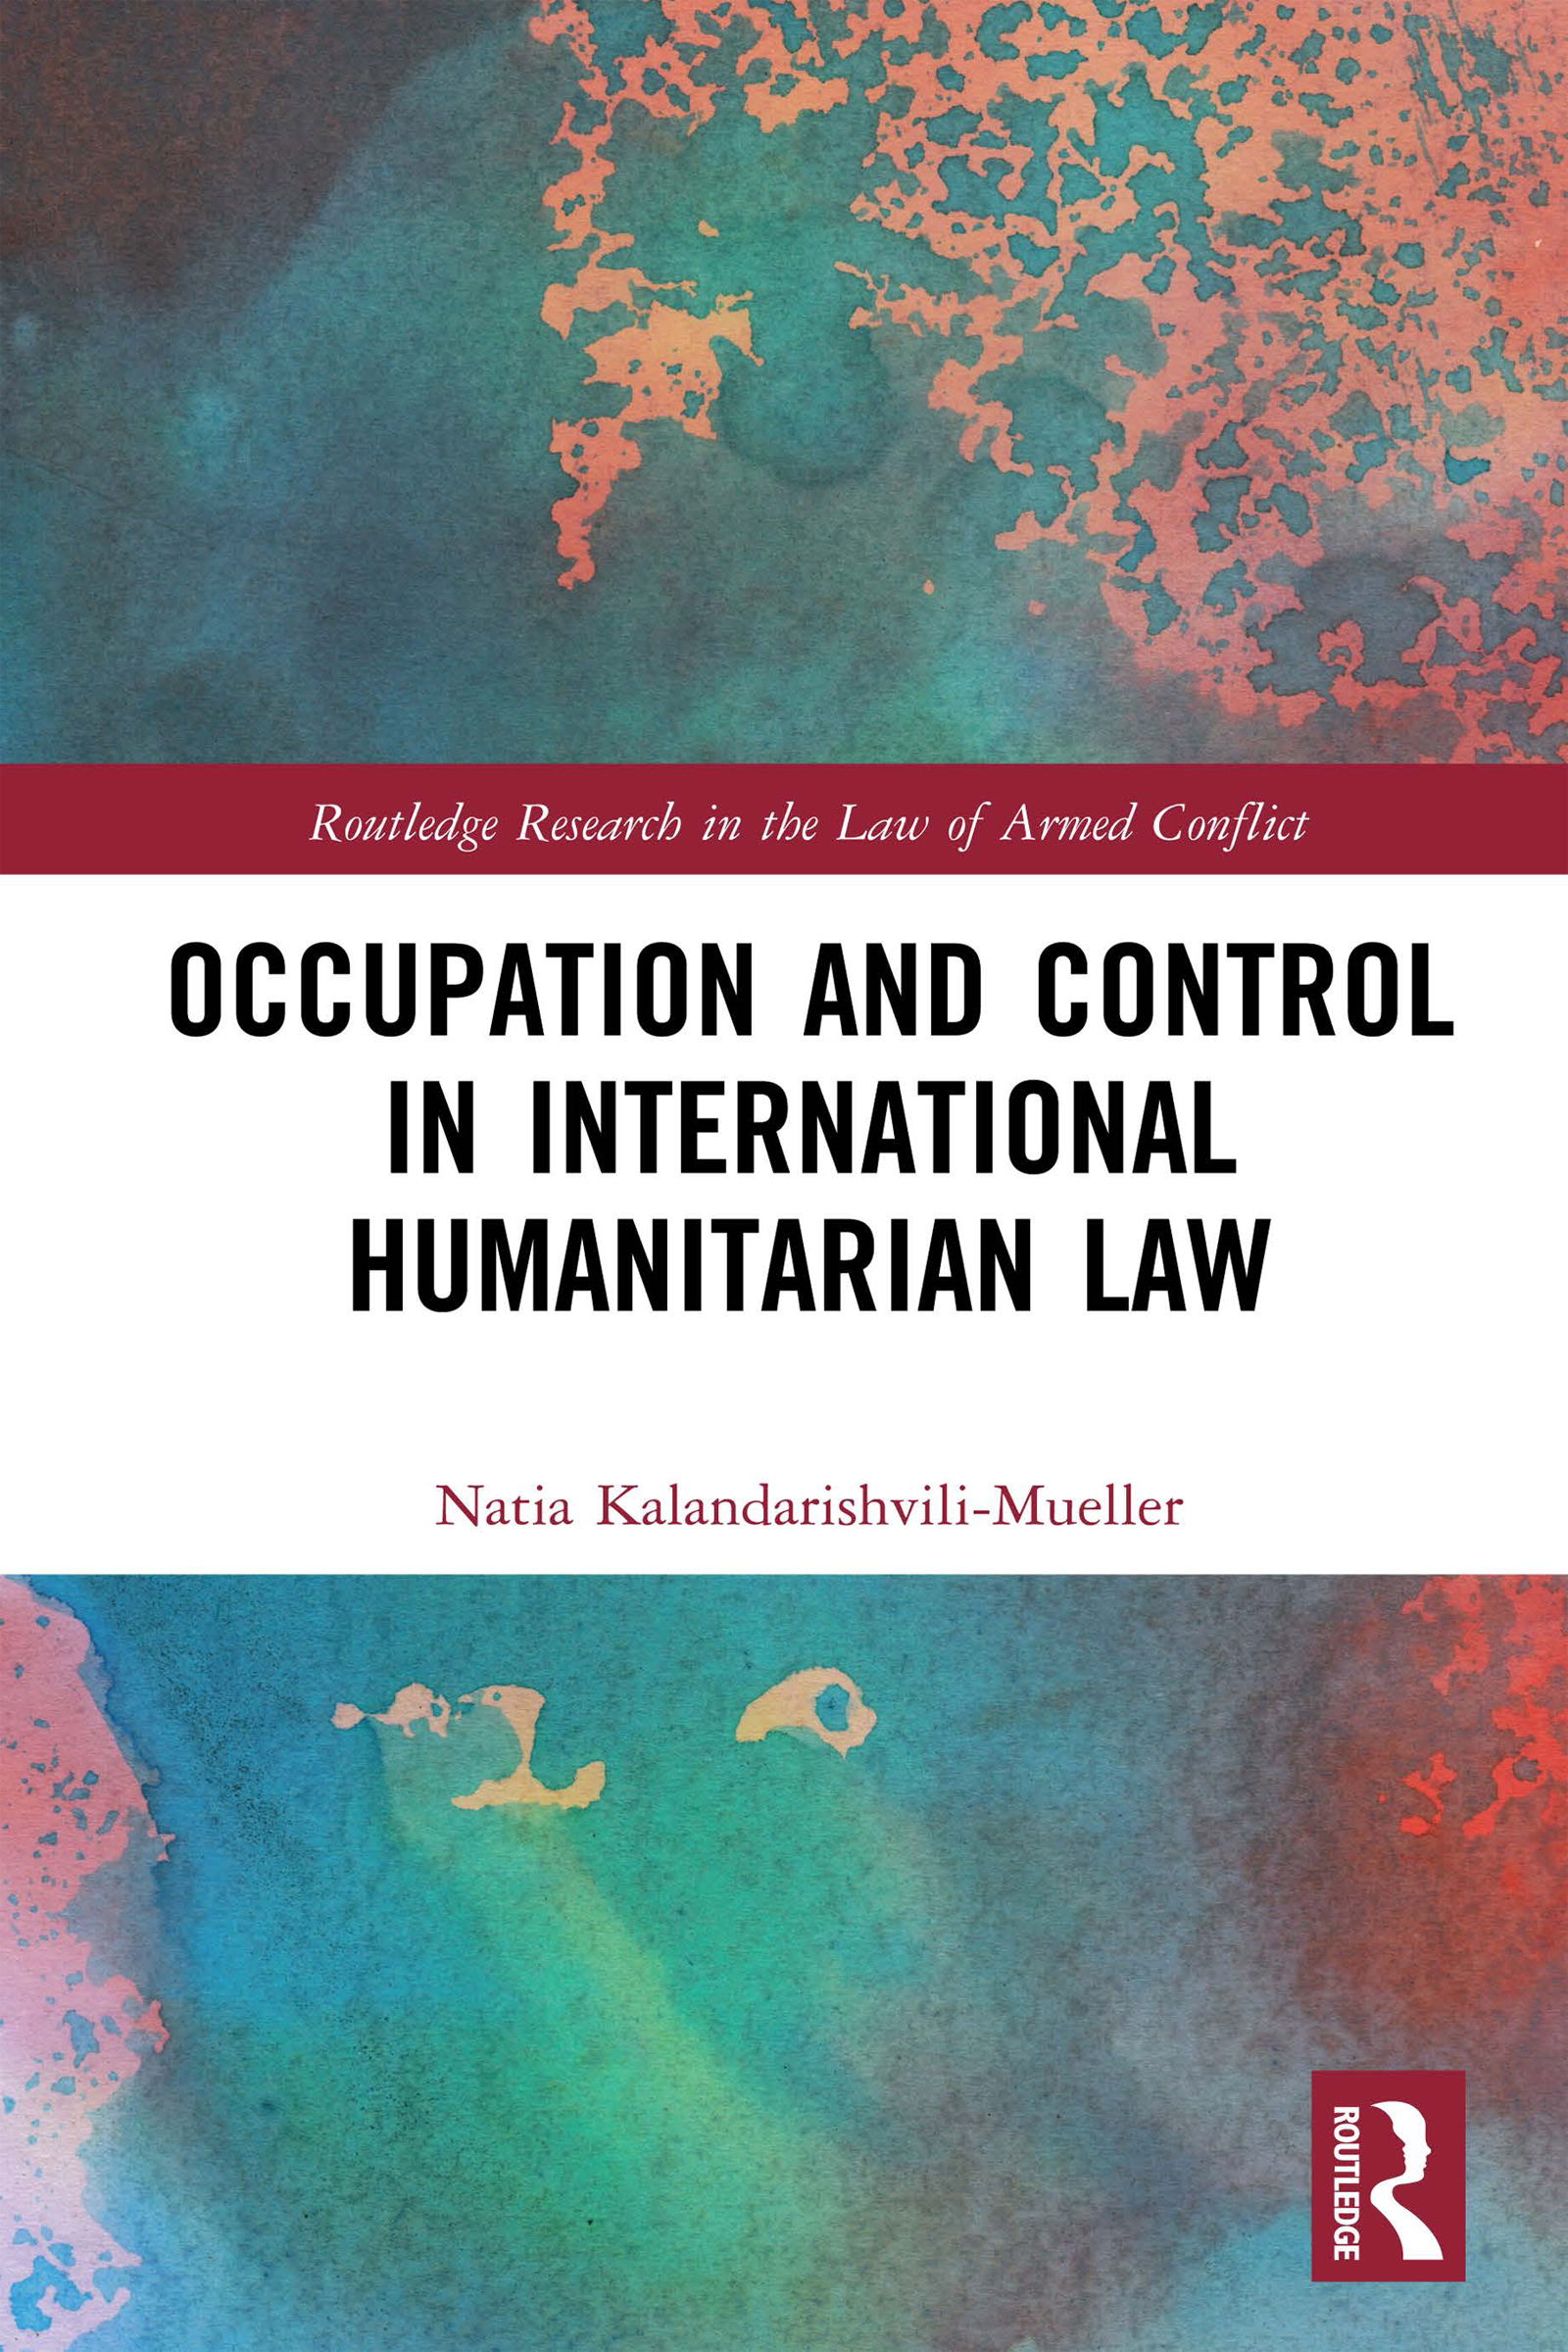 Occupation and Control in International Humanitarian Law